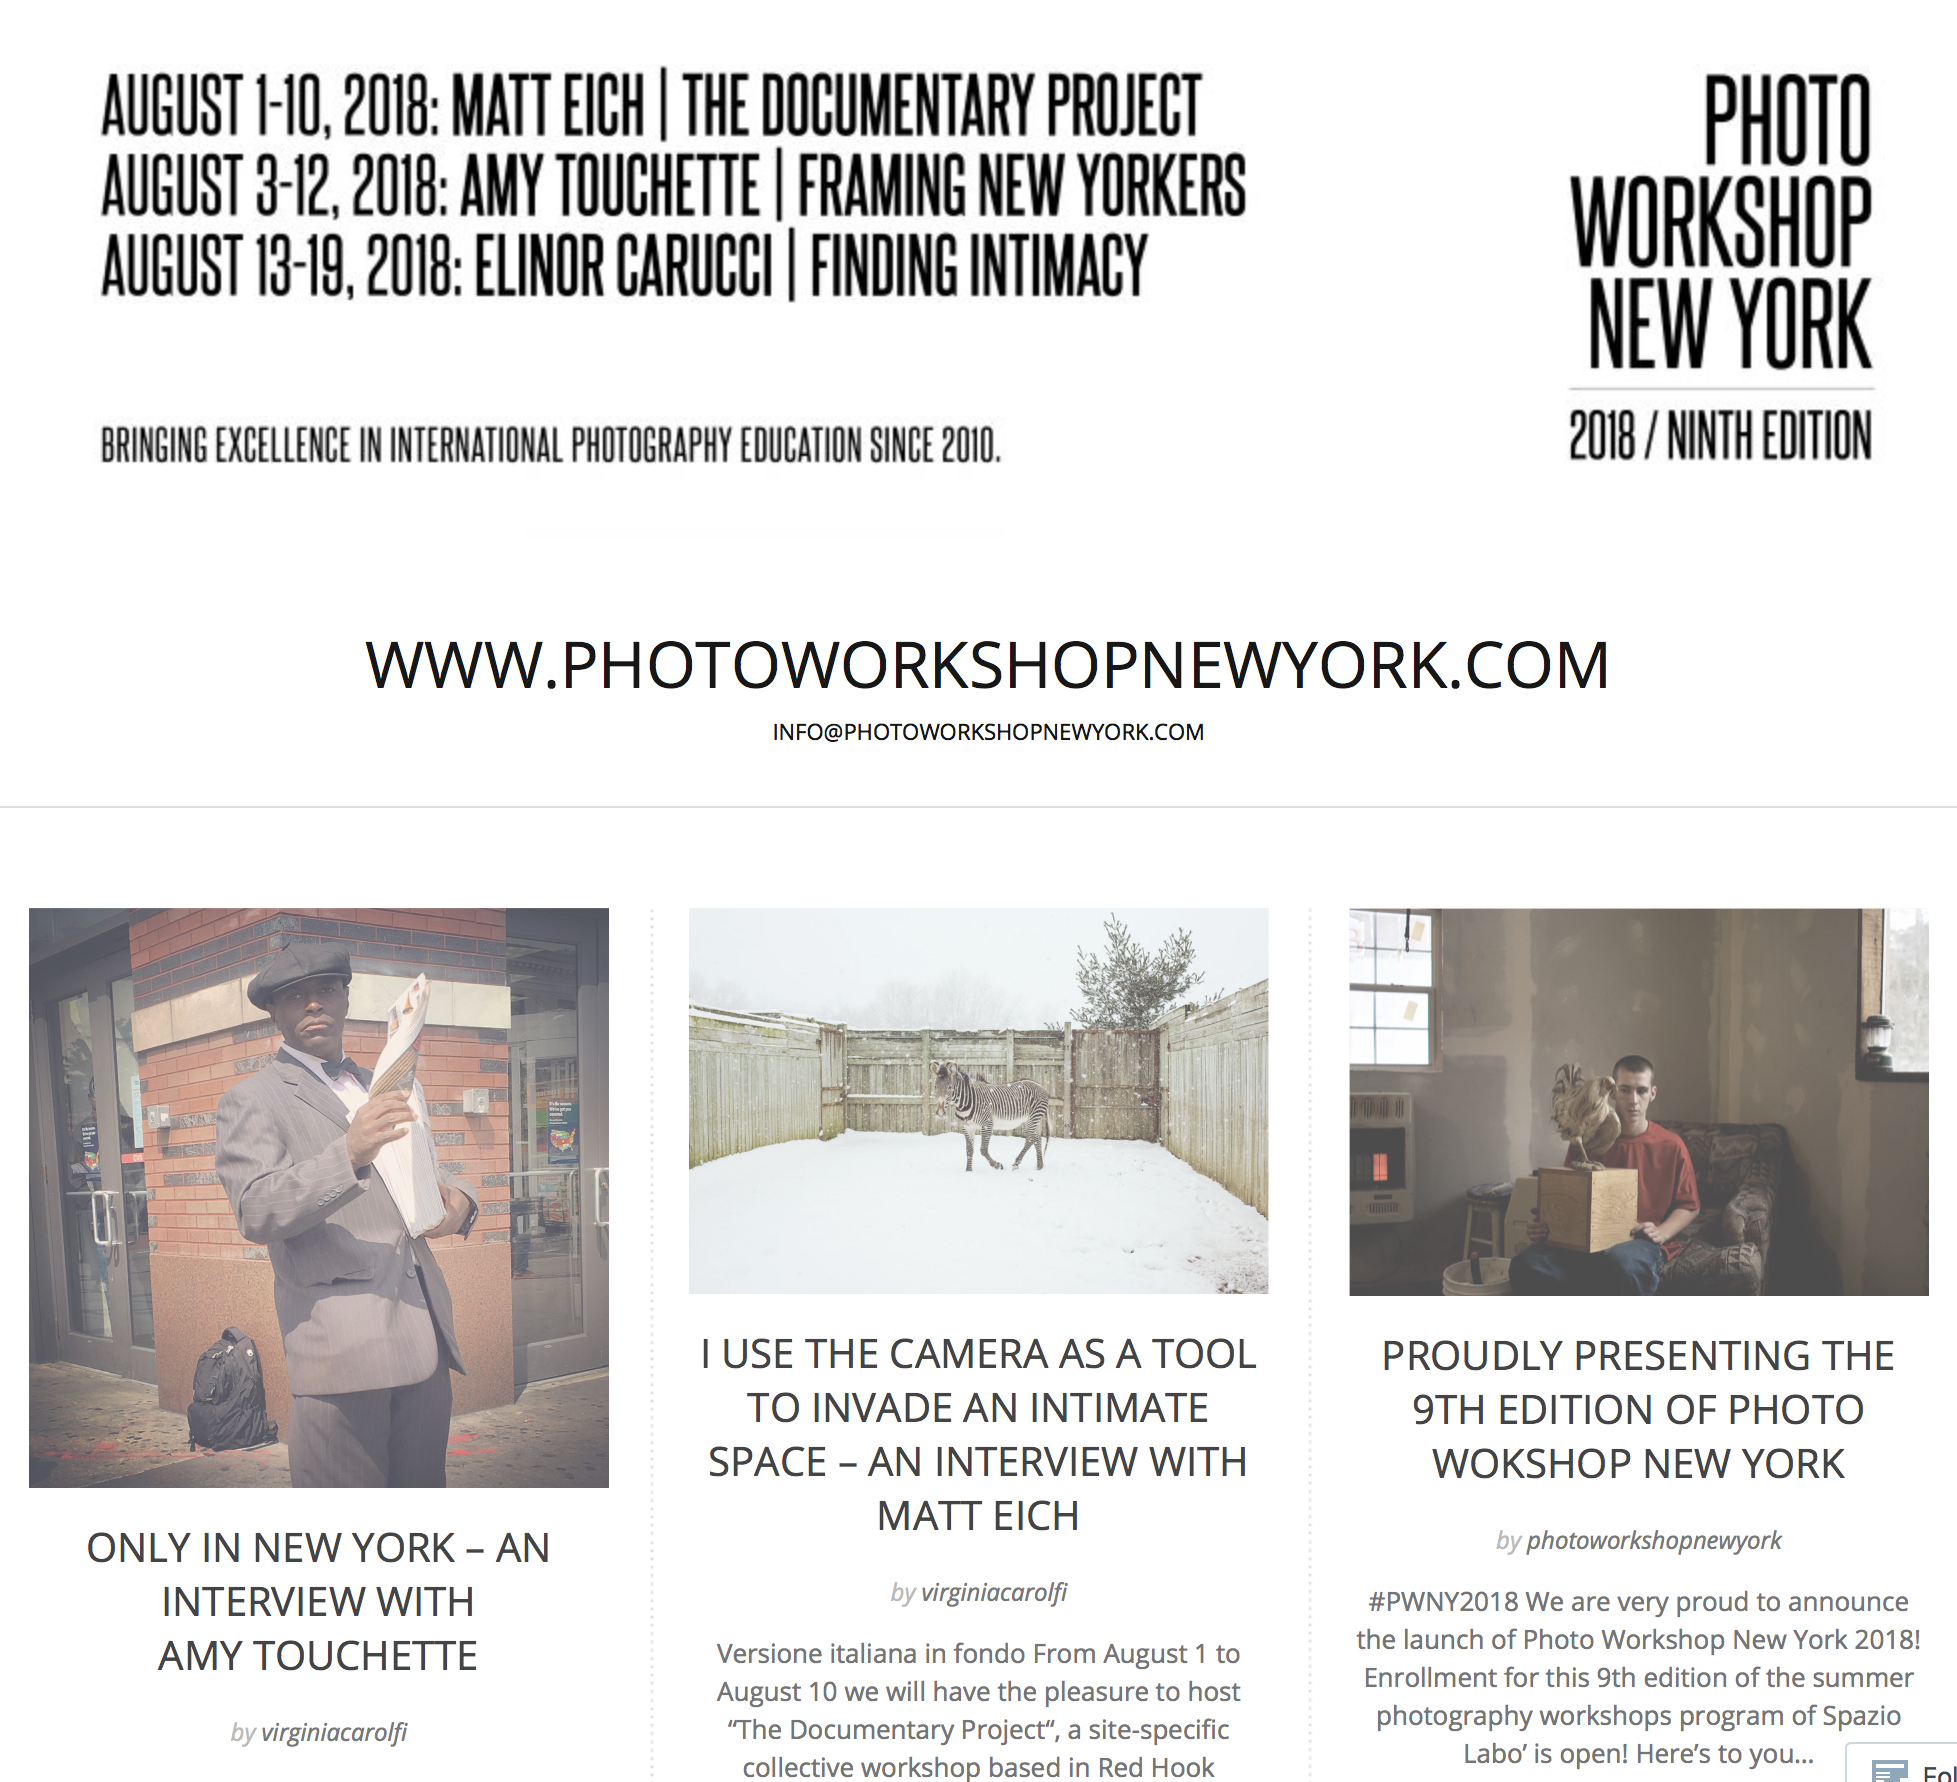 Photo Workshop New York,Interview - FEBRUARY 9, 2018 PHOTO WORKSHOP NEW YORK (PWNY) is an educational project organized each year in New York City, founded in 2010 by Laura De Marco and Roberto Alfano, the directors of the center of photography Spazio Labo' in Bologna, Italy.